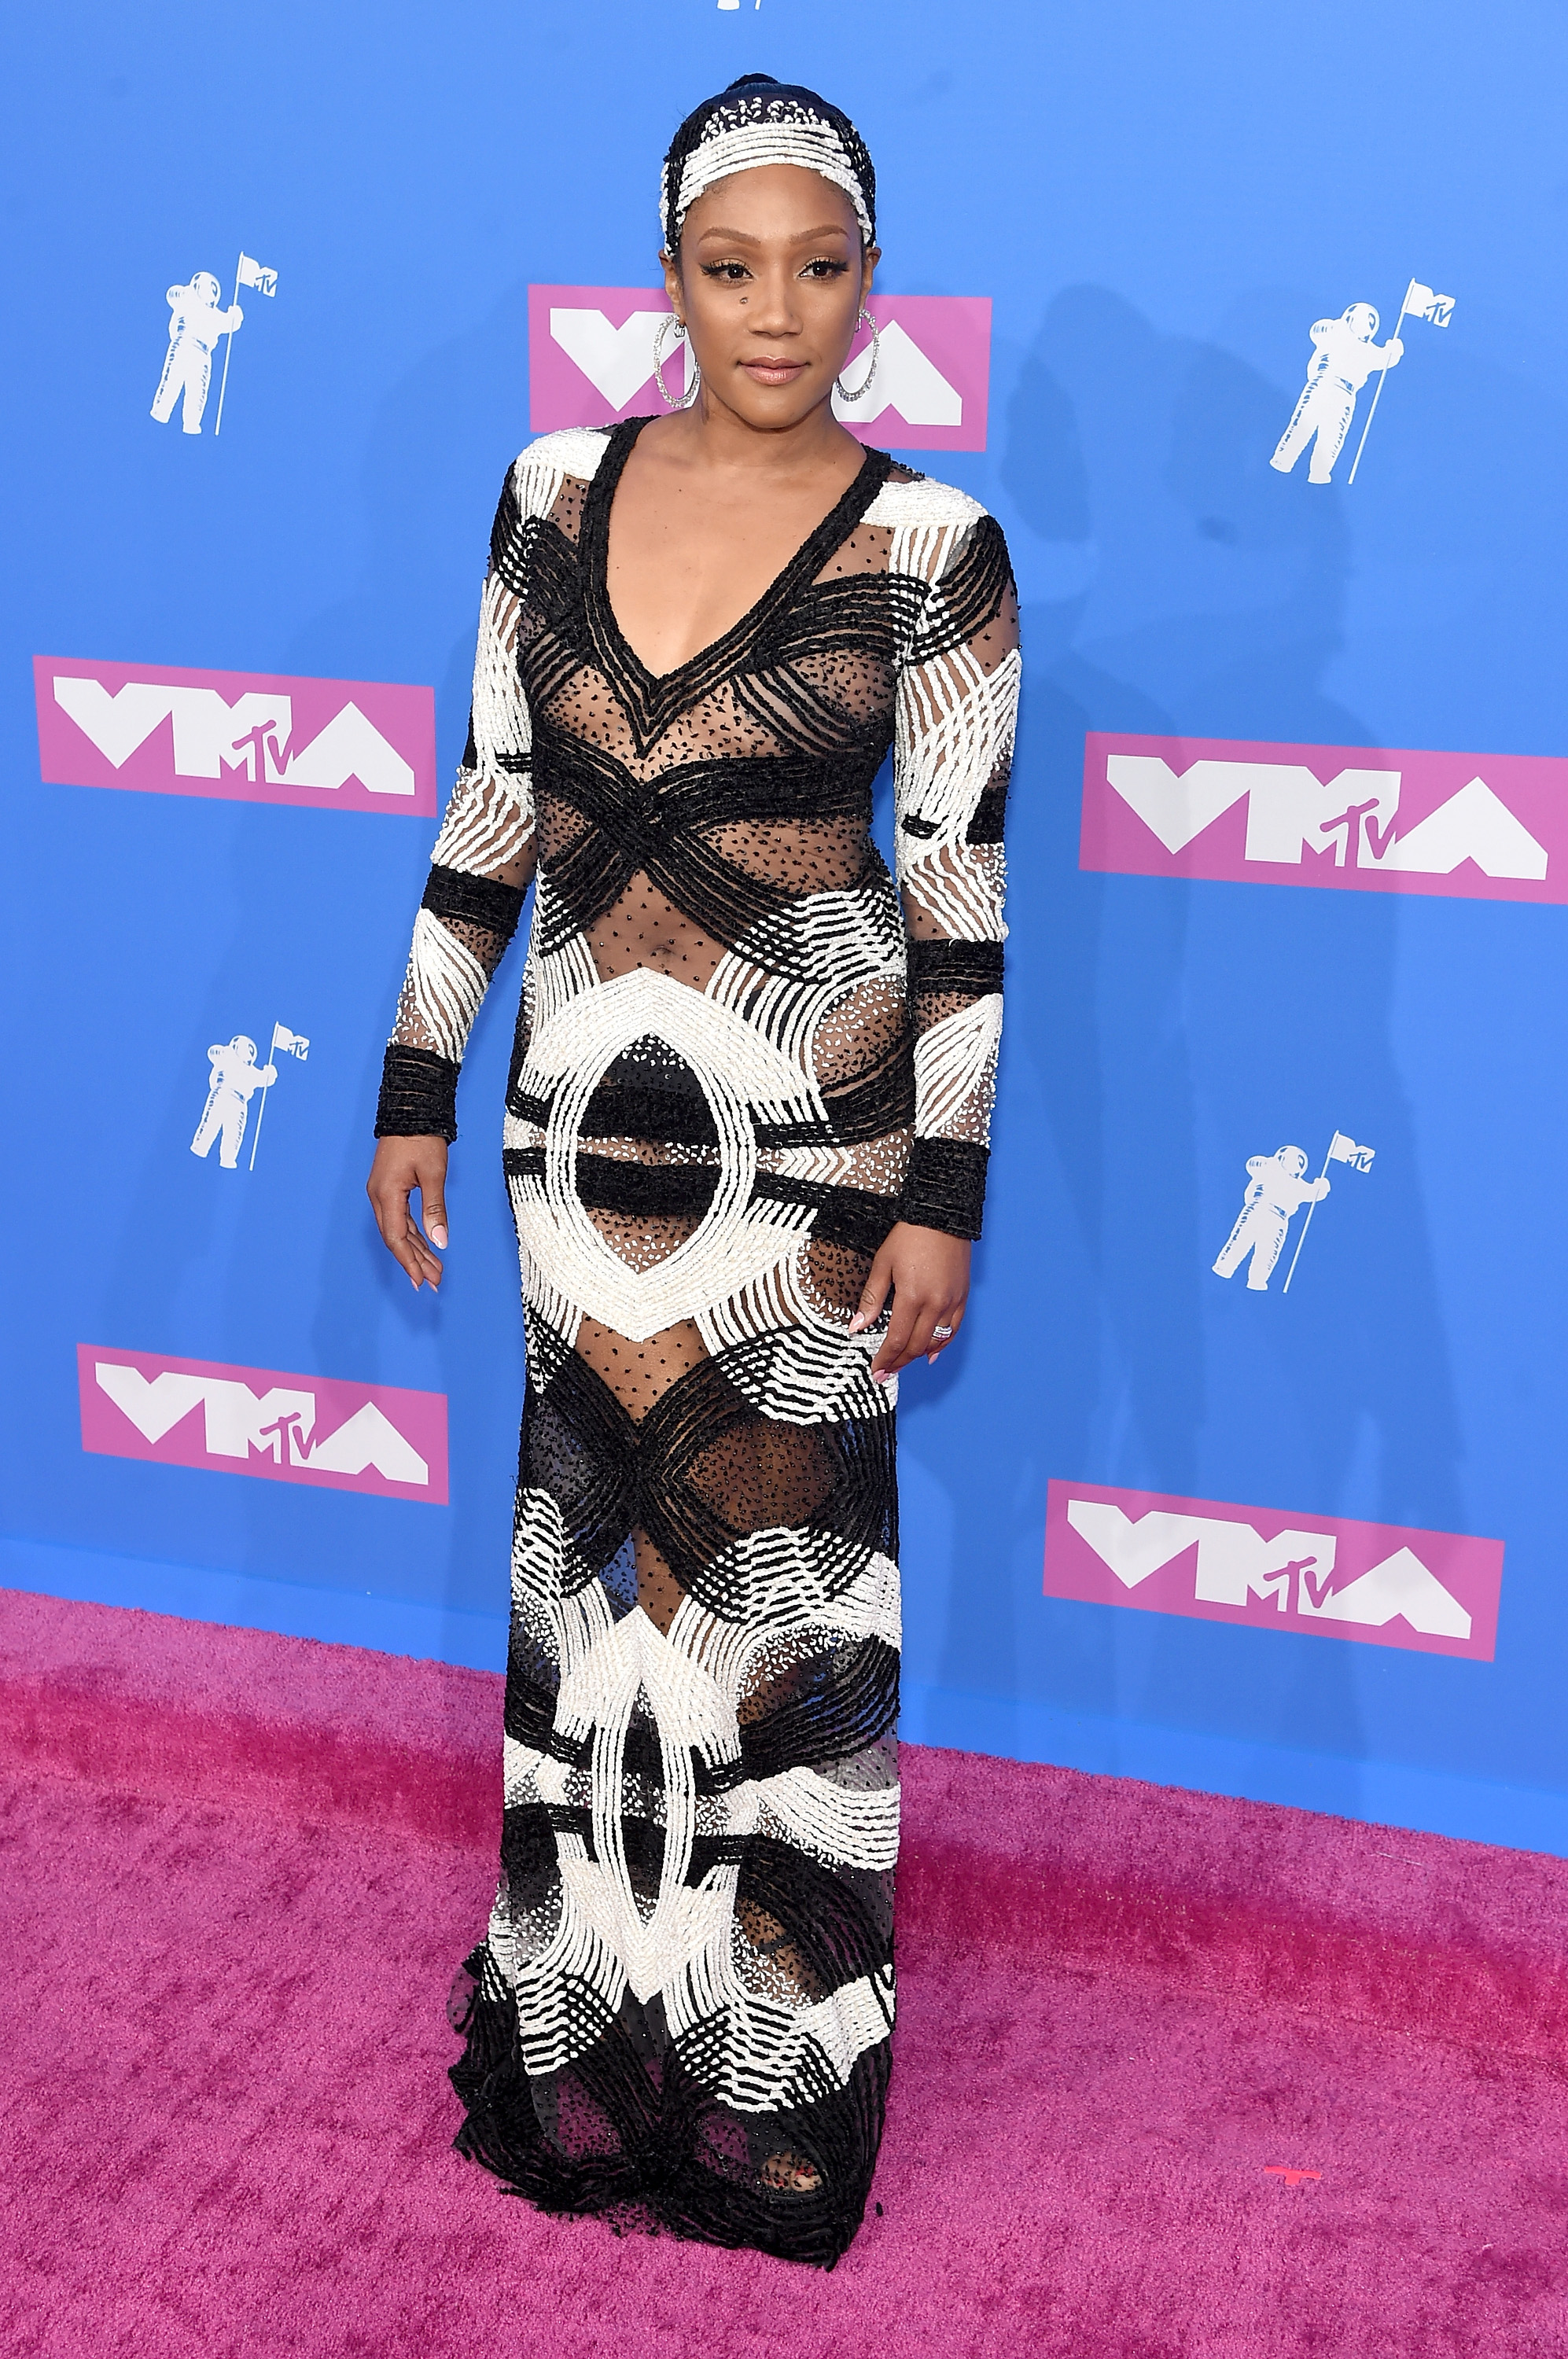 Tiffany Haddish attends the 2018 MTV Video Music Awards at Radio City Music Hall on August 20, 2018 in New York City.